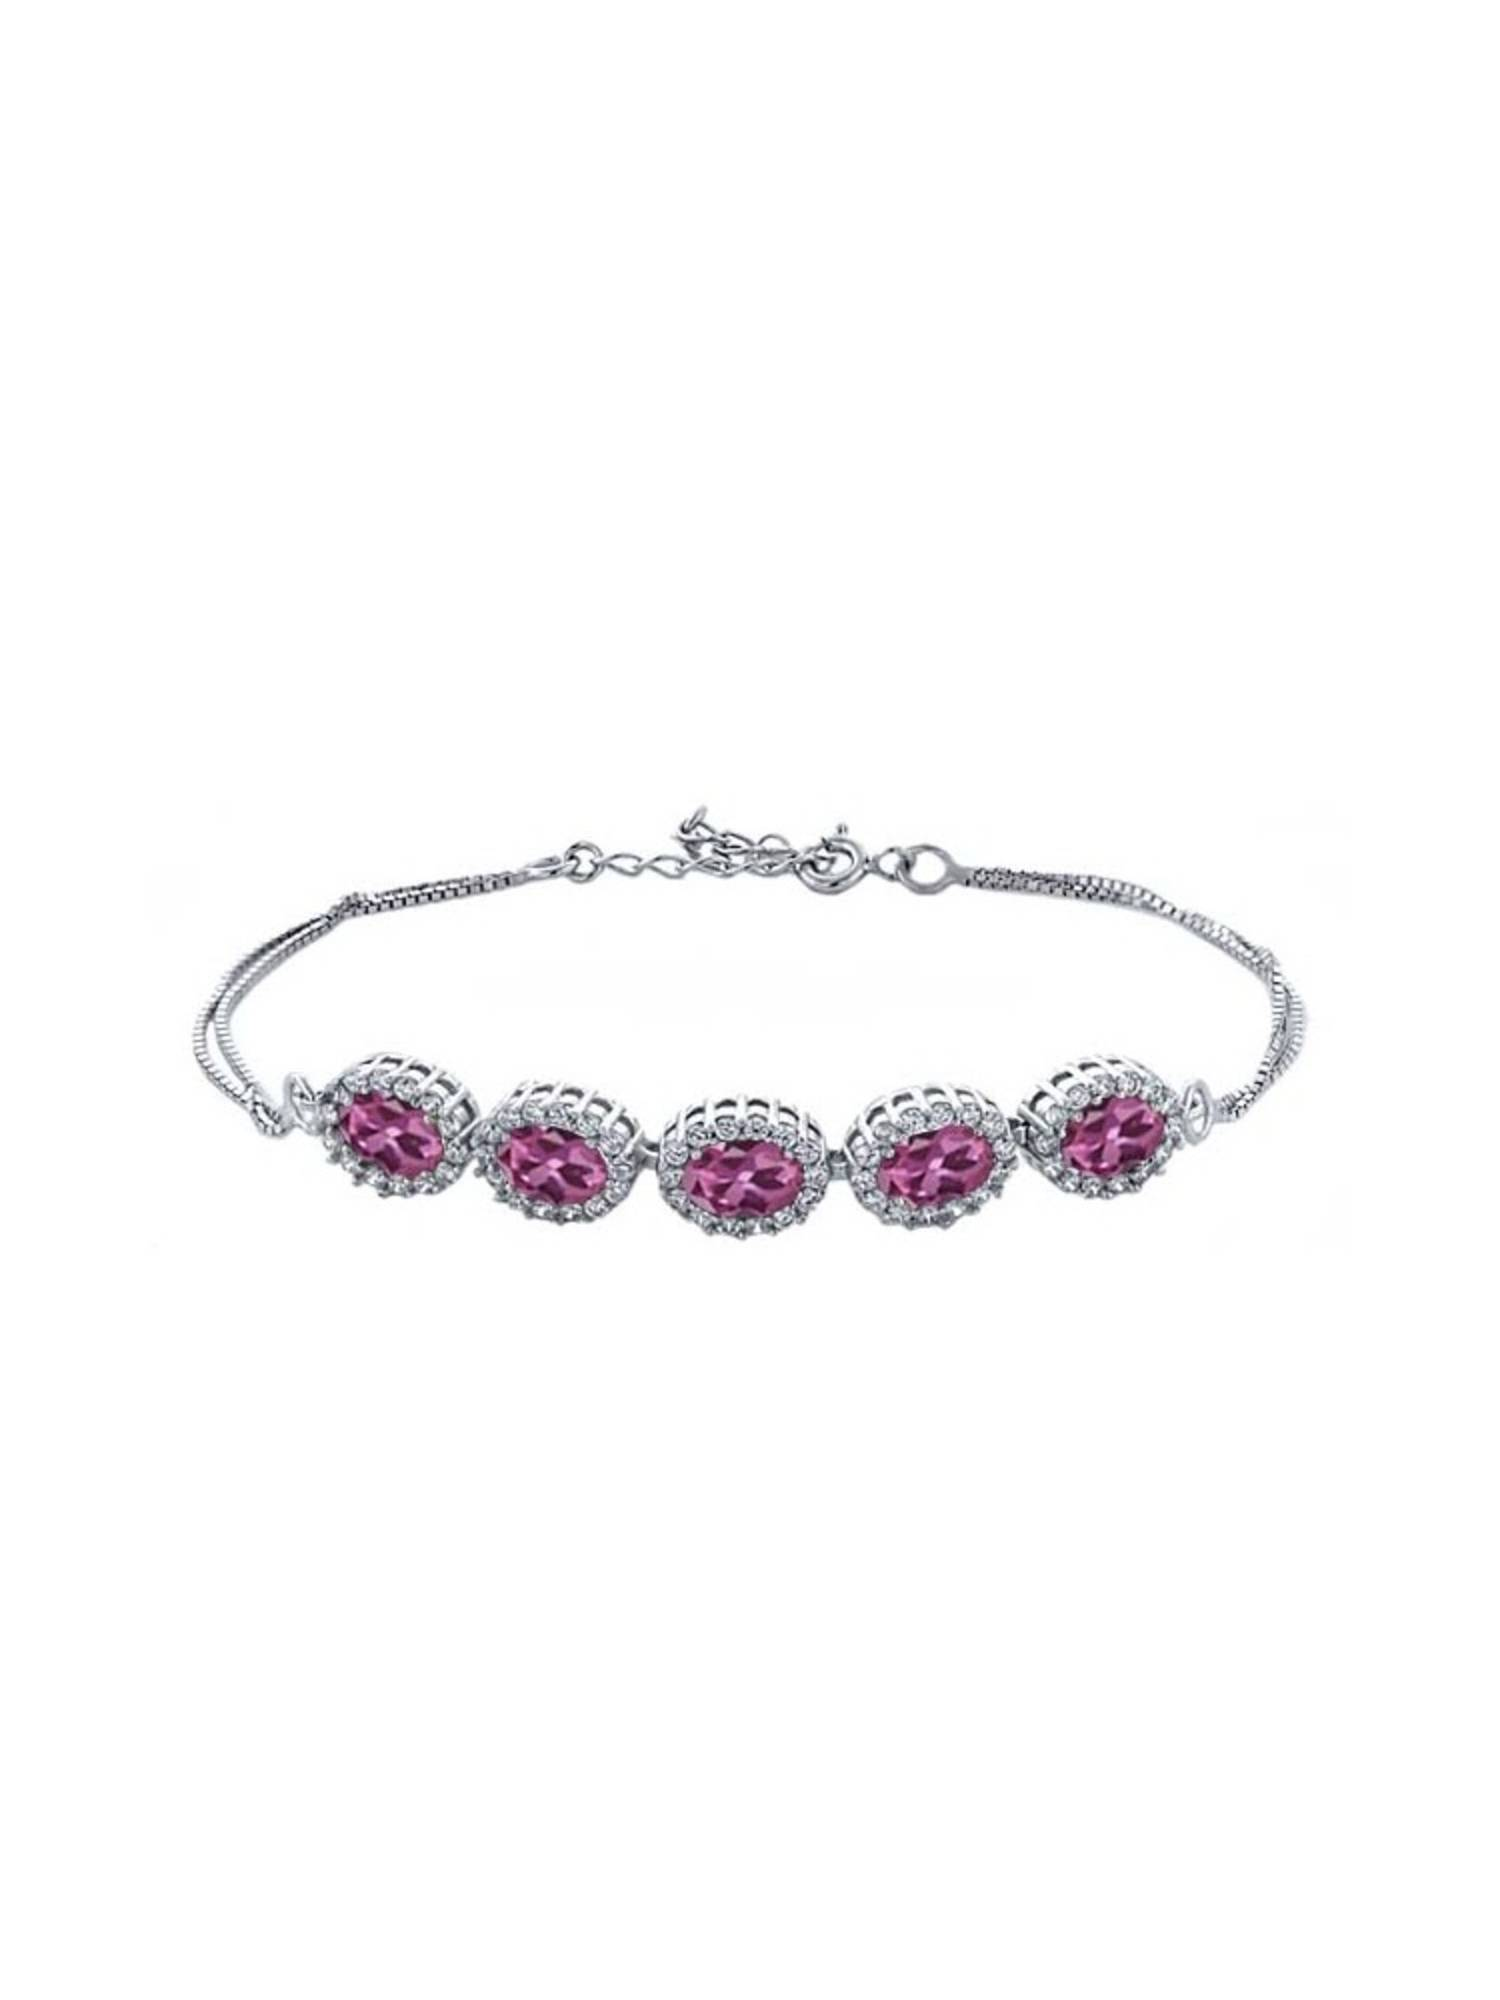 5.29 Ct Oval Pink Tourmaline 925 Sterling Silver Bracelet by